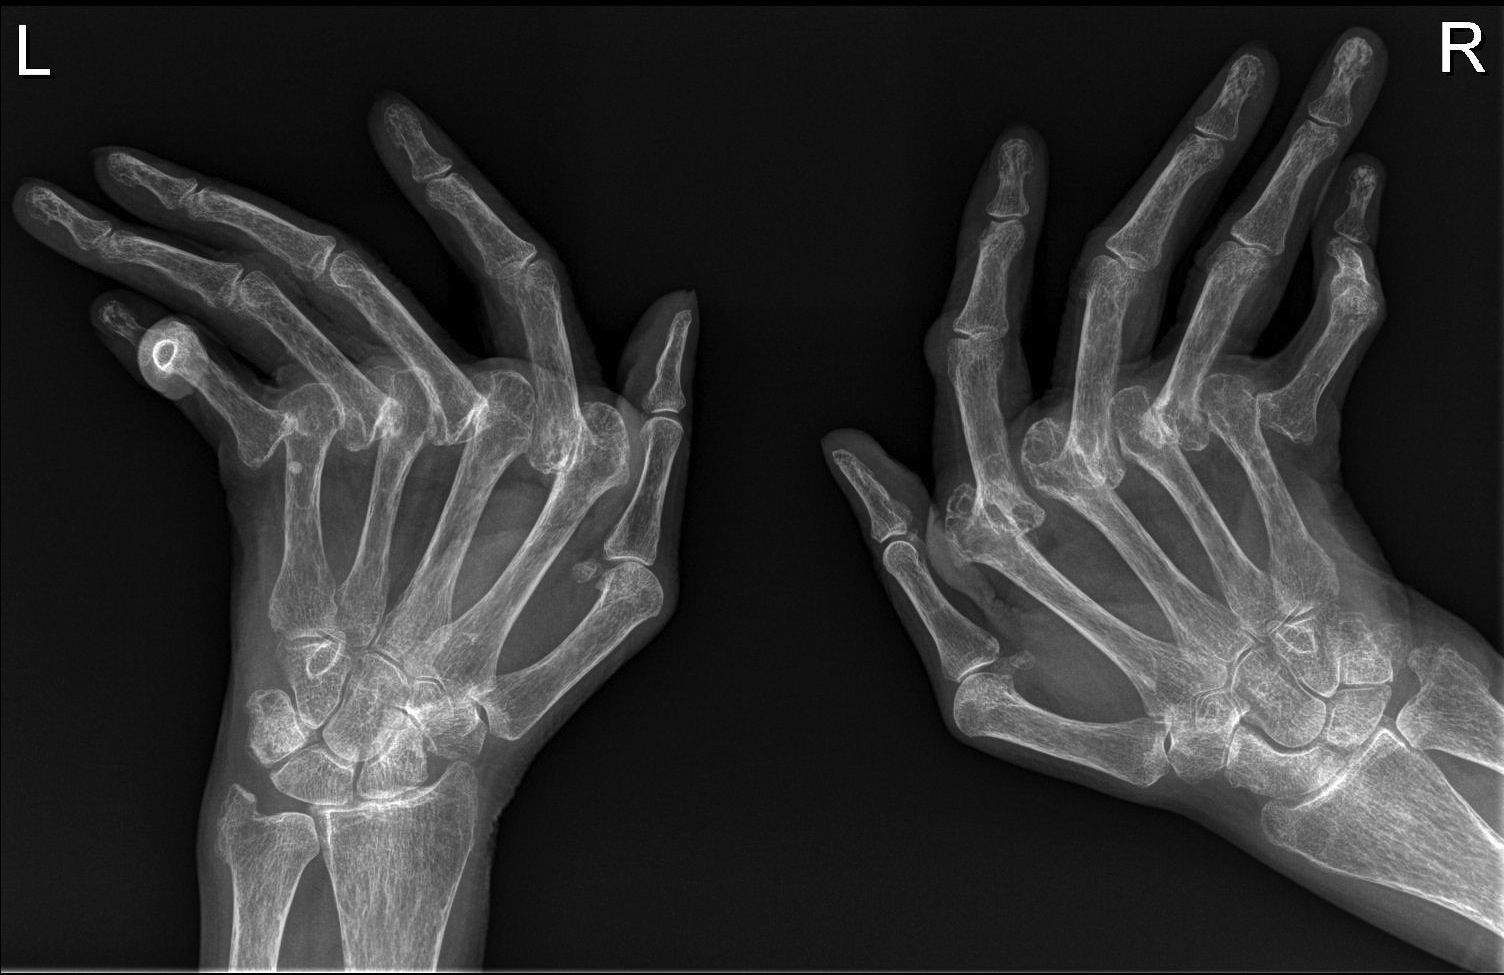 Two hands damaged by rheumatoid arthritis